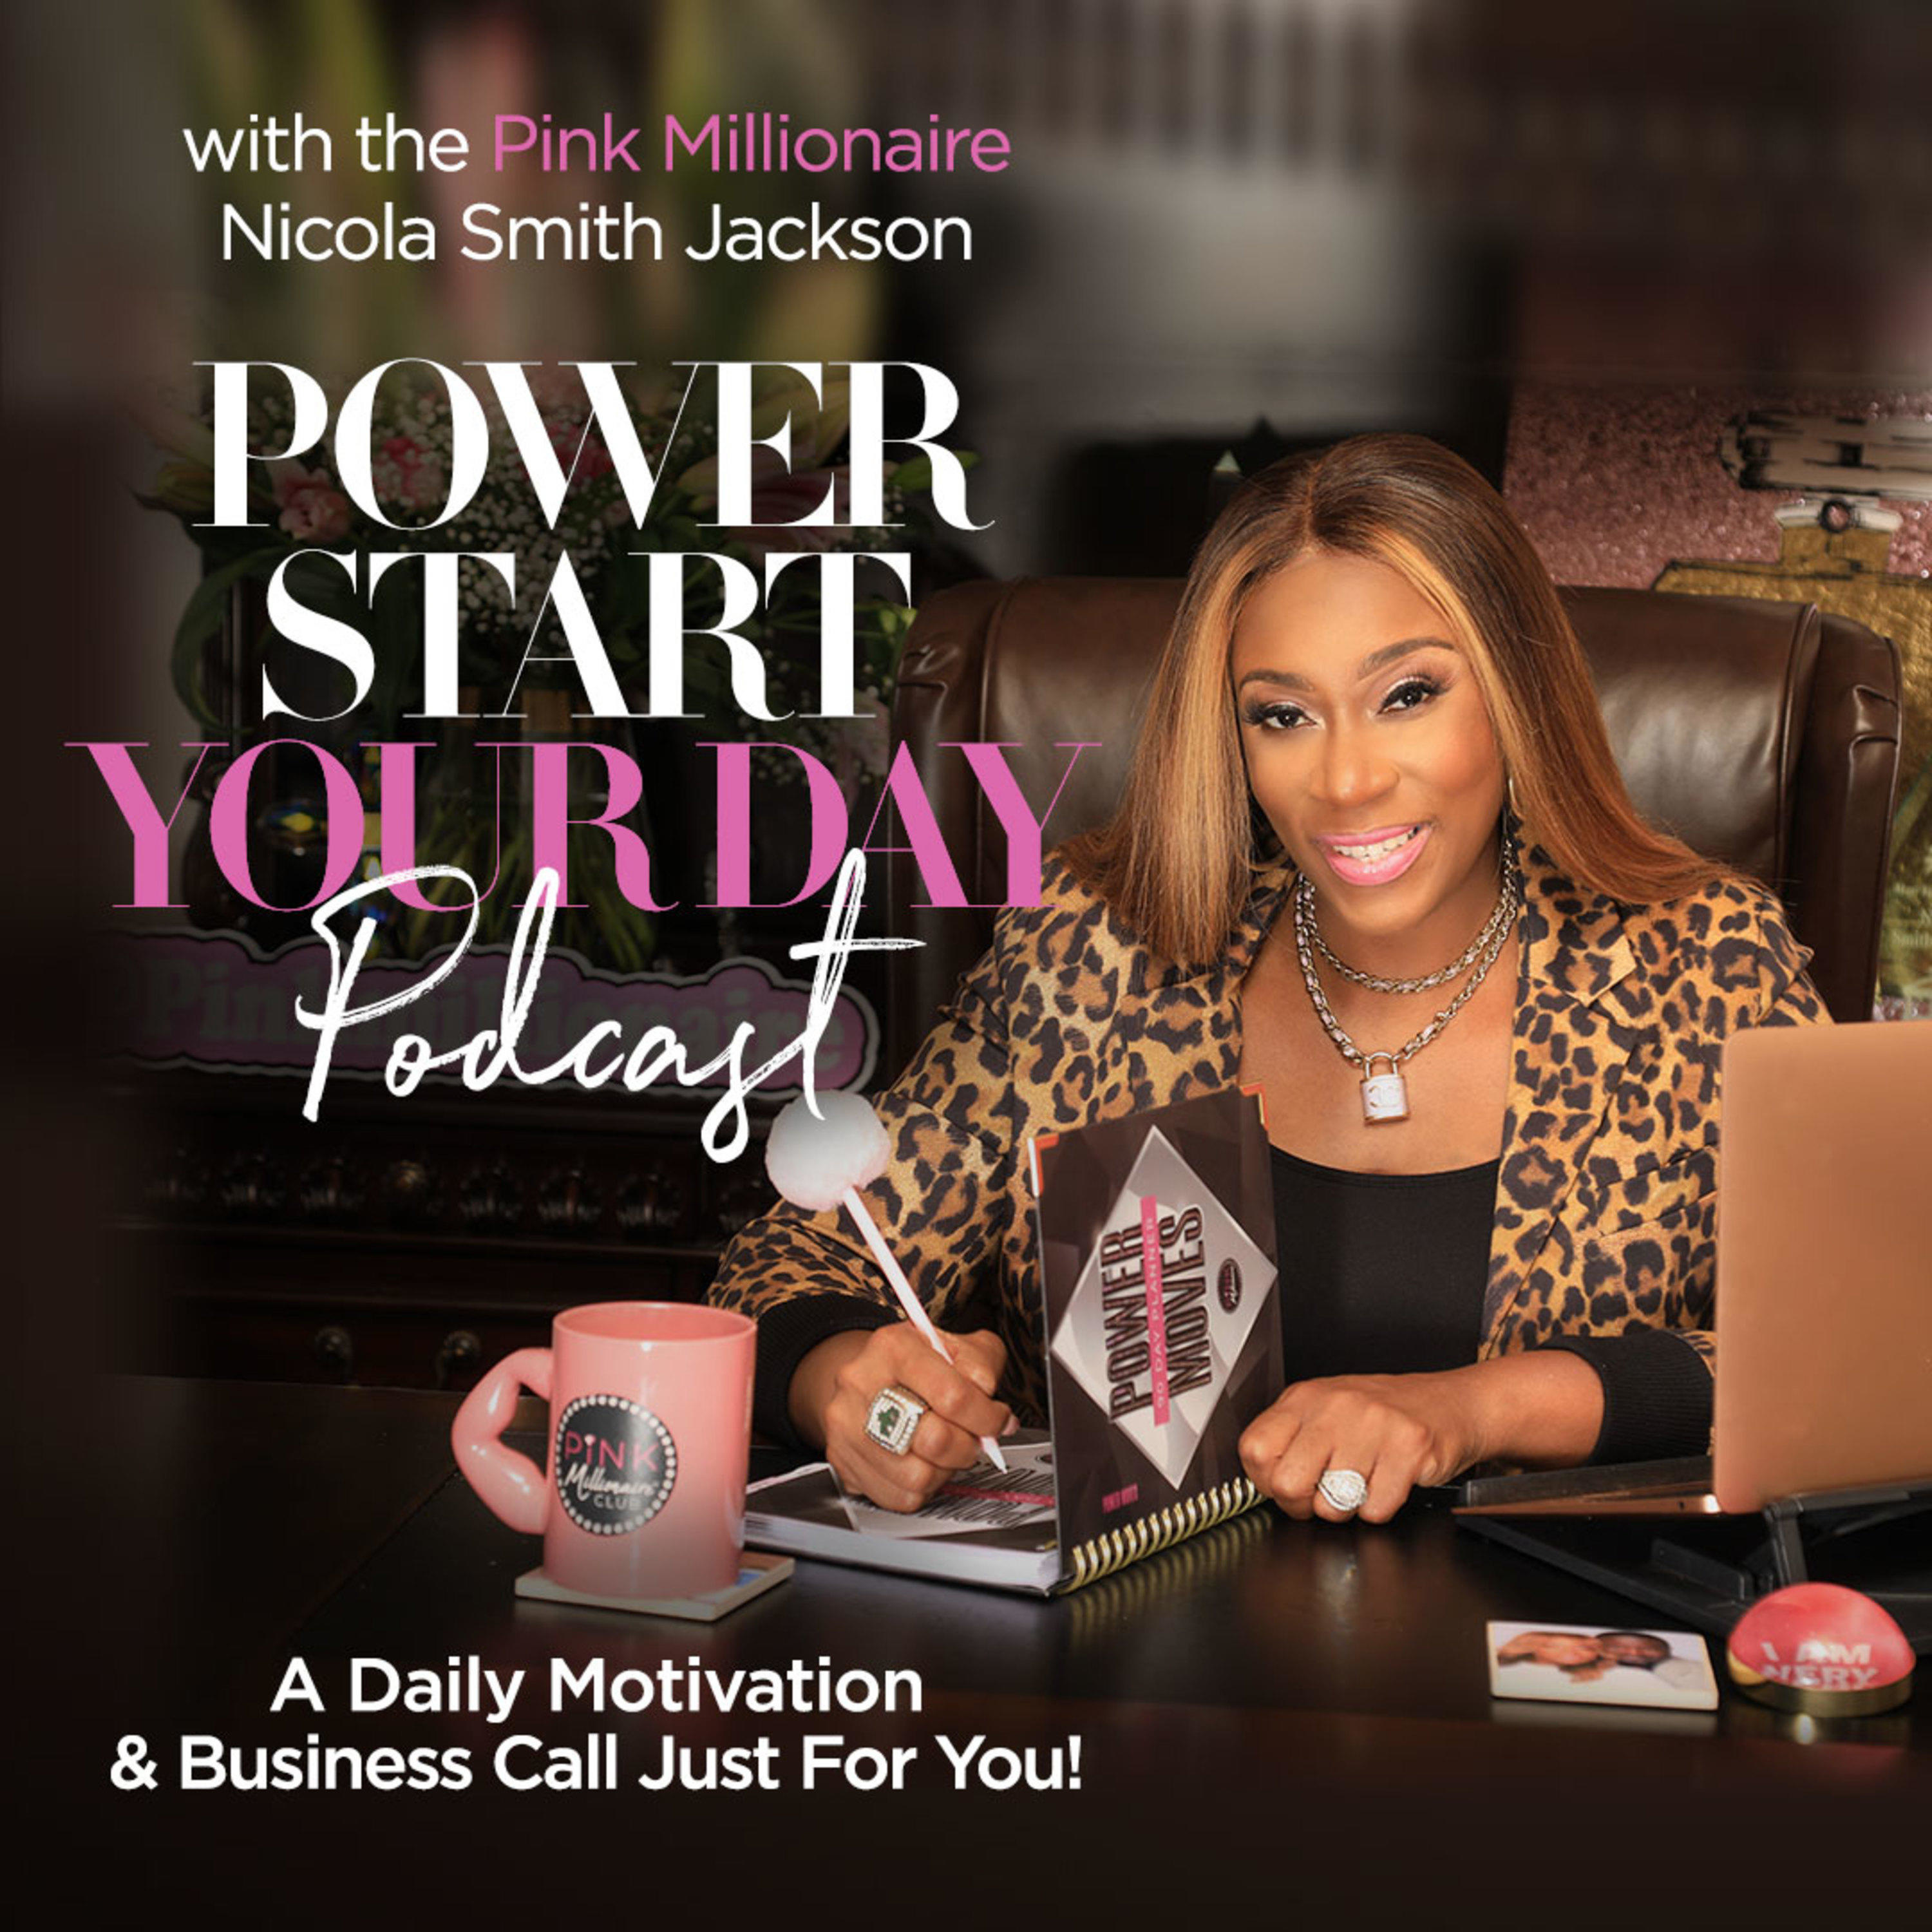 Power Start Your Day